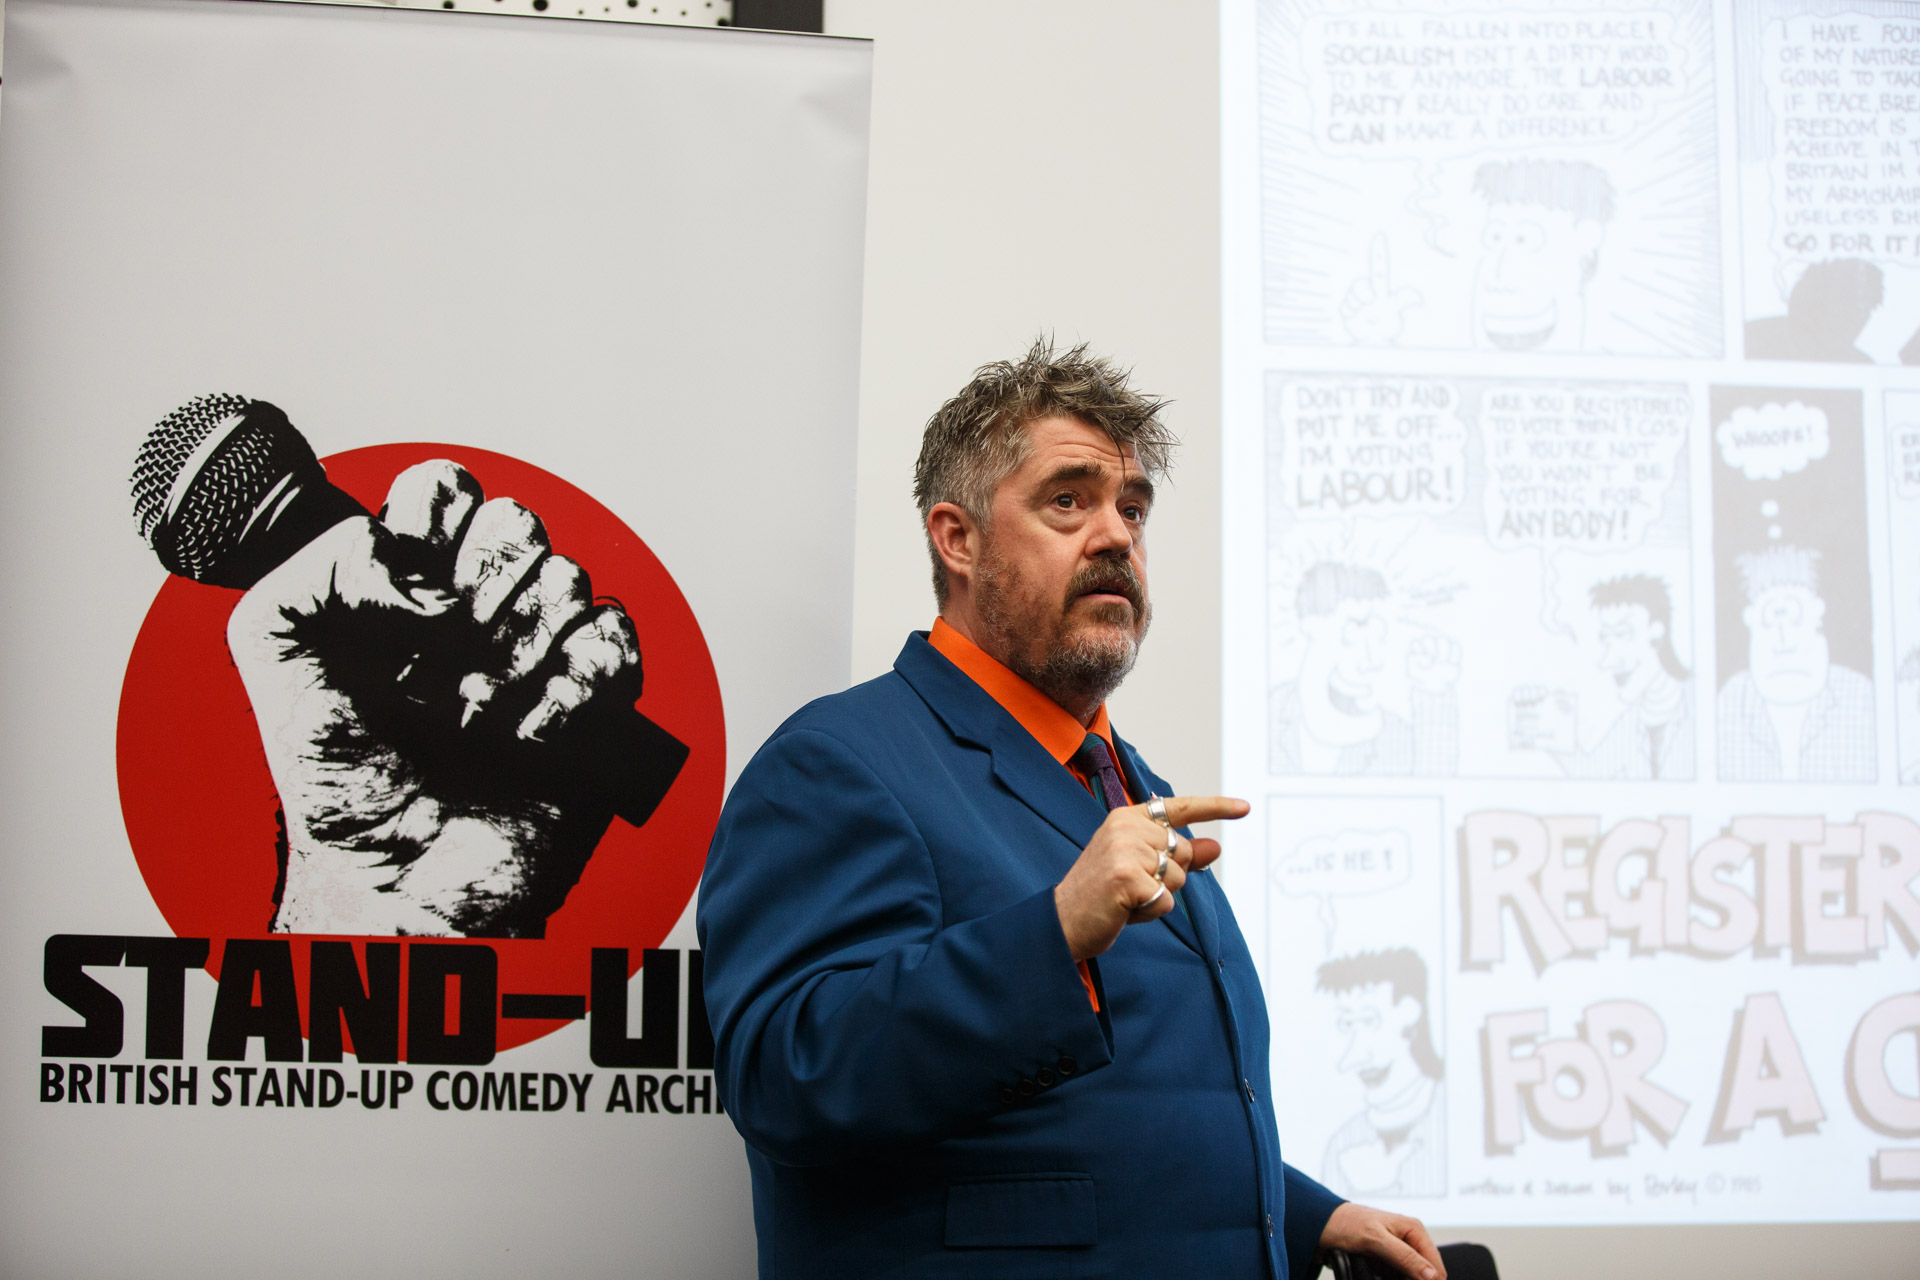 Phill Jupitus talking about a Red Wedge Comedy leaflet which cartooned for (as Porky the Poet). Photo Matt Wilson